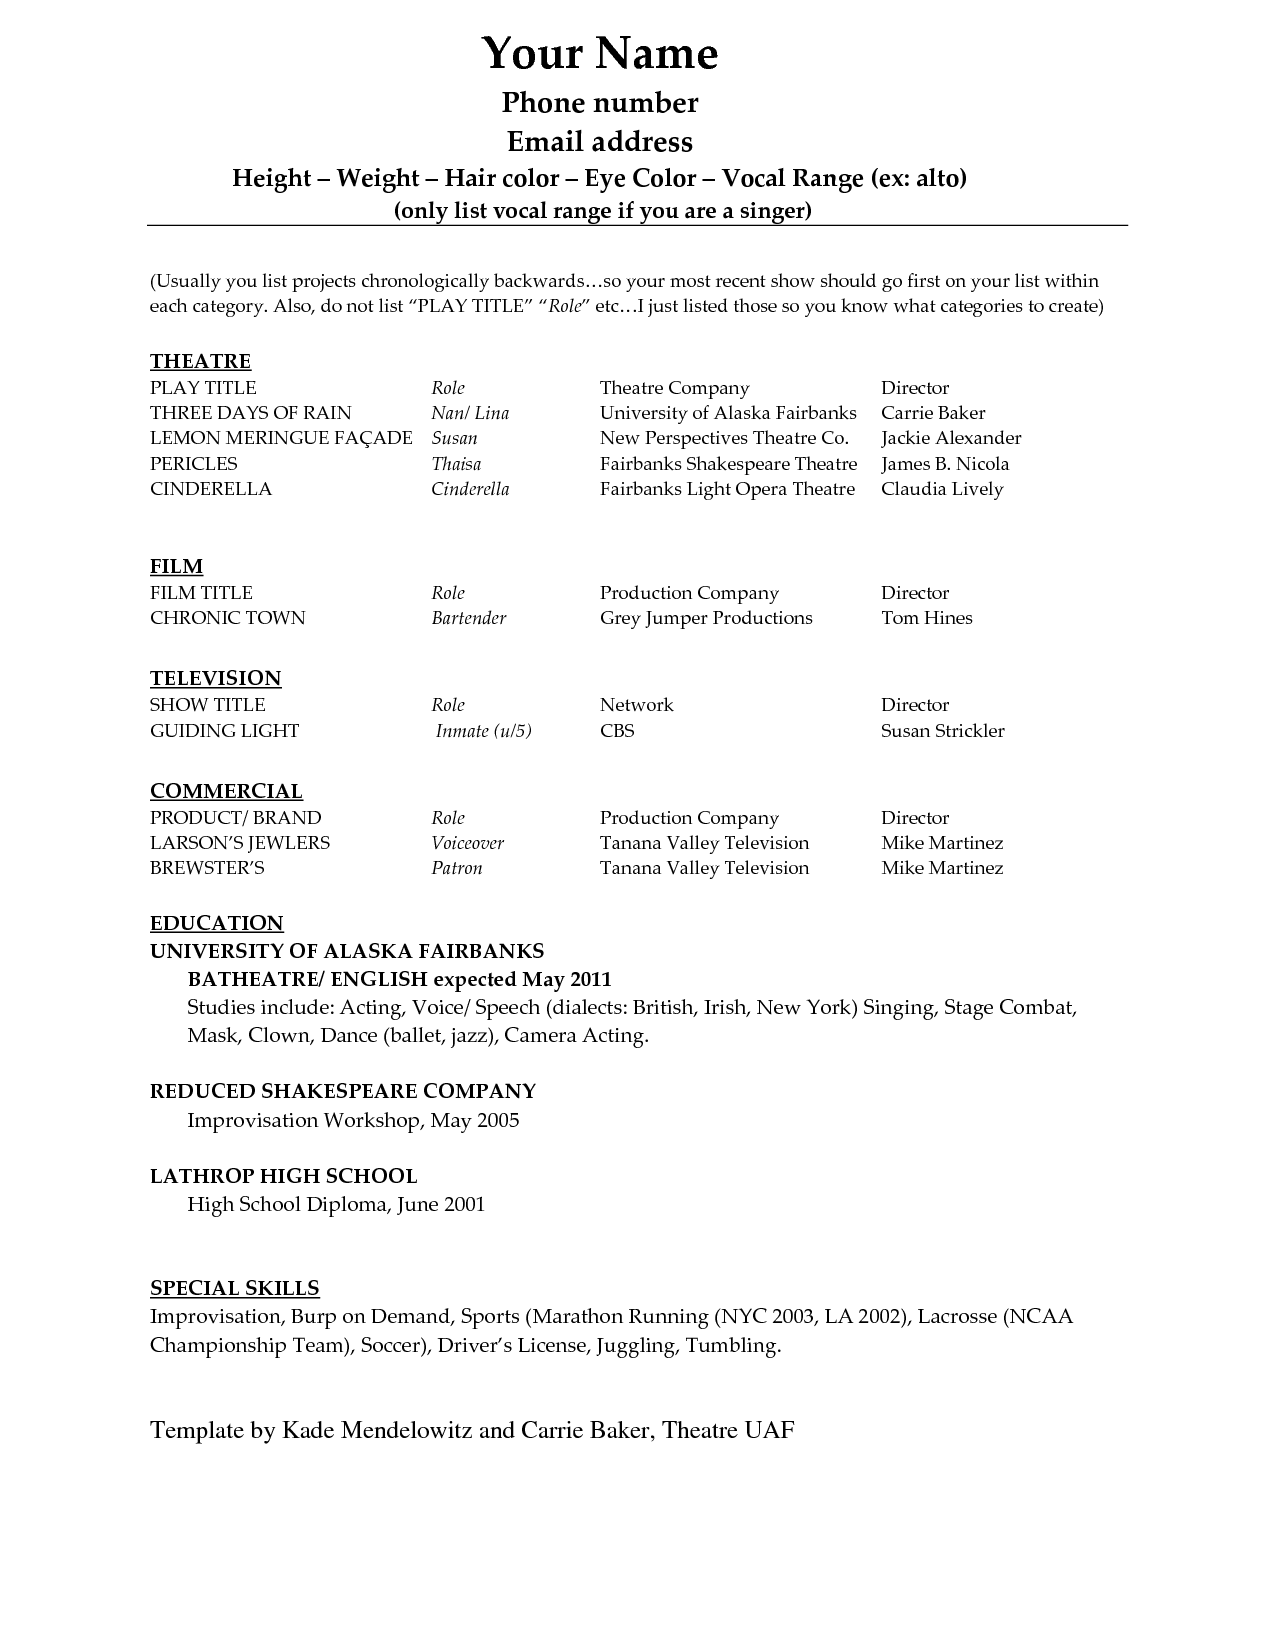 Acting Resume Template Download Free Httpwwwresumecareer - Open office resume templates free download